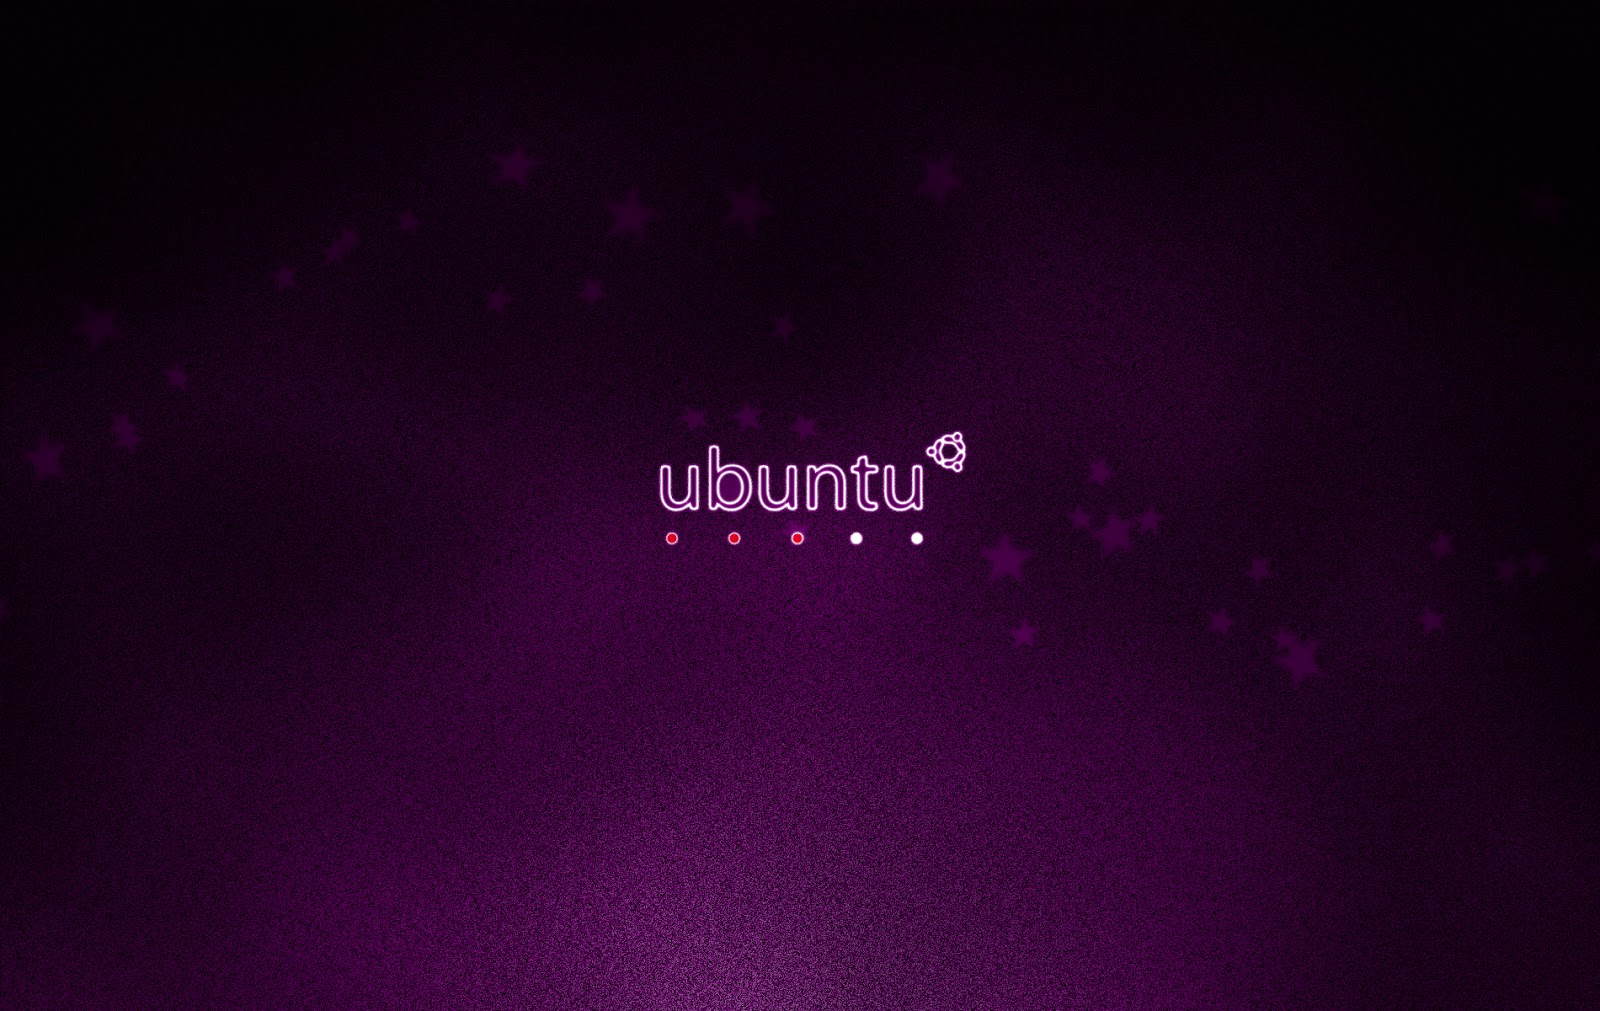 HD Wallpapers UBUNTU HD WALLPAPERS 1600x1011